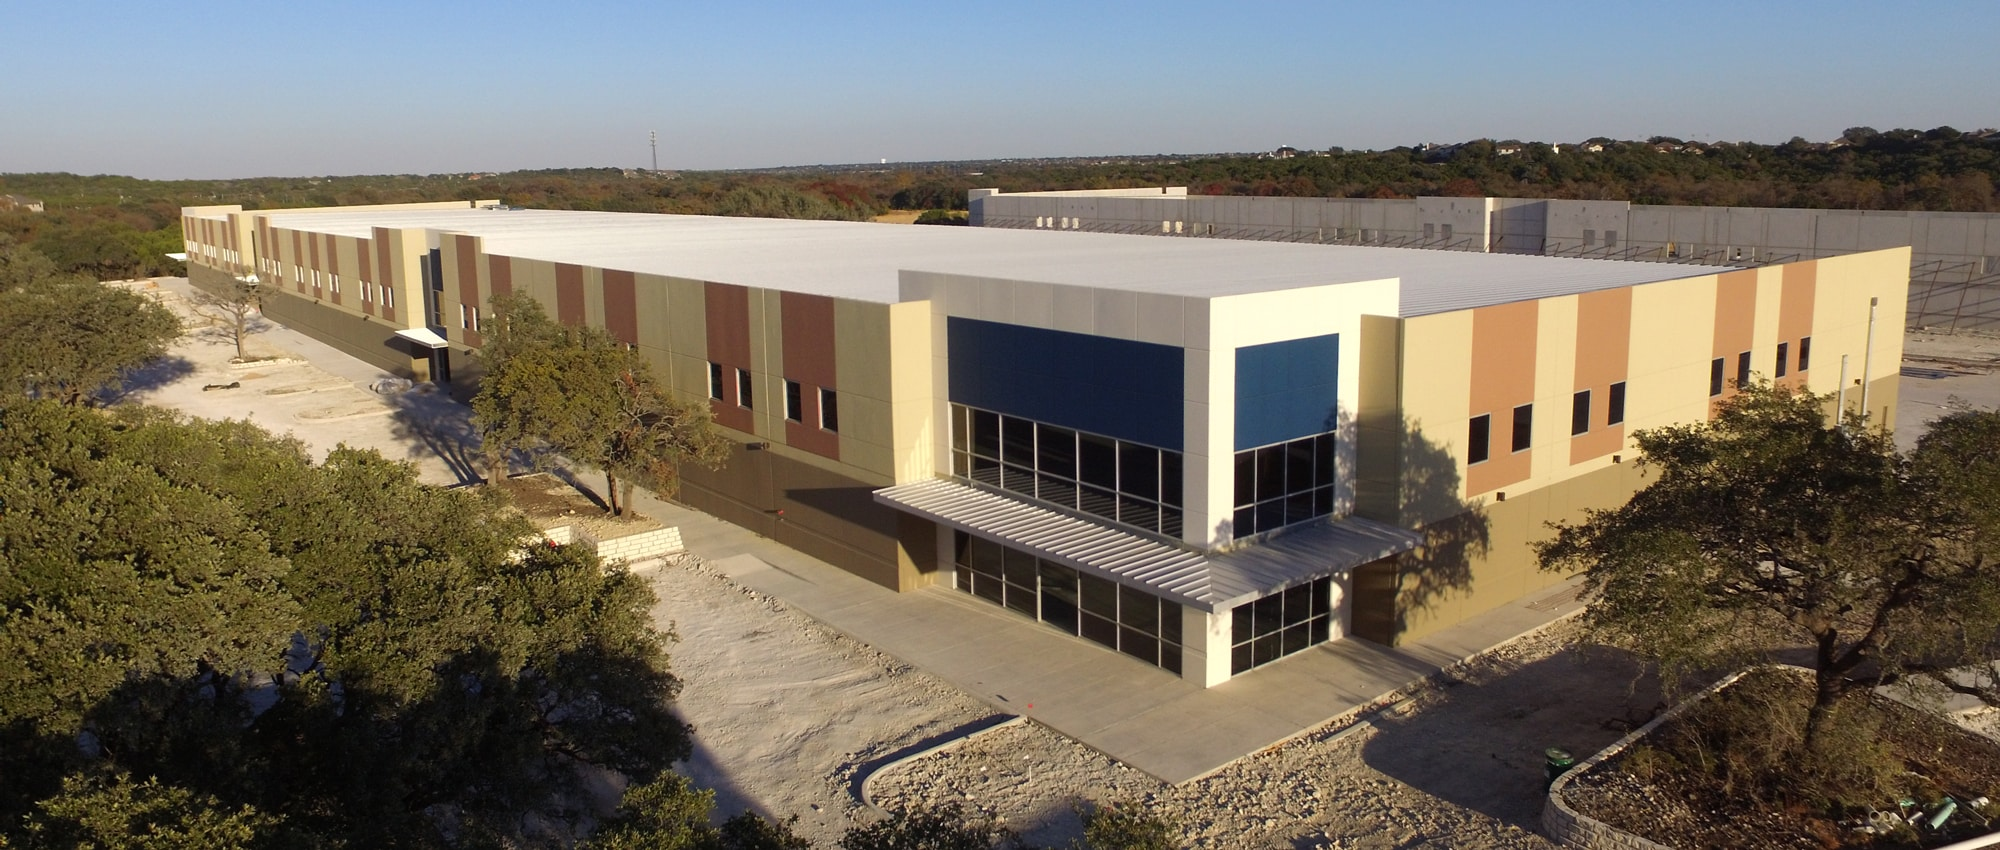 Brushy Creek Corporate Center